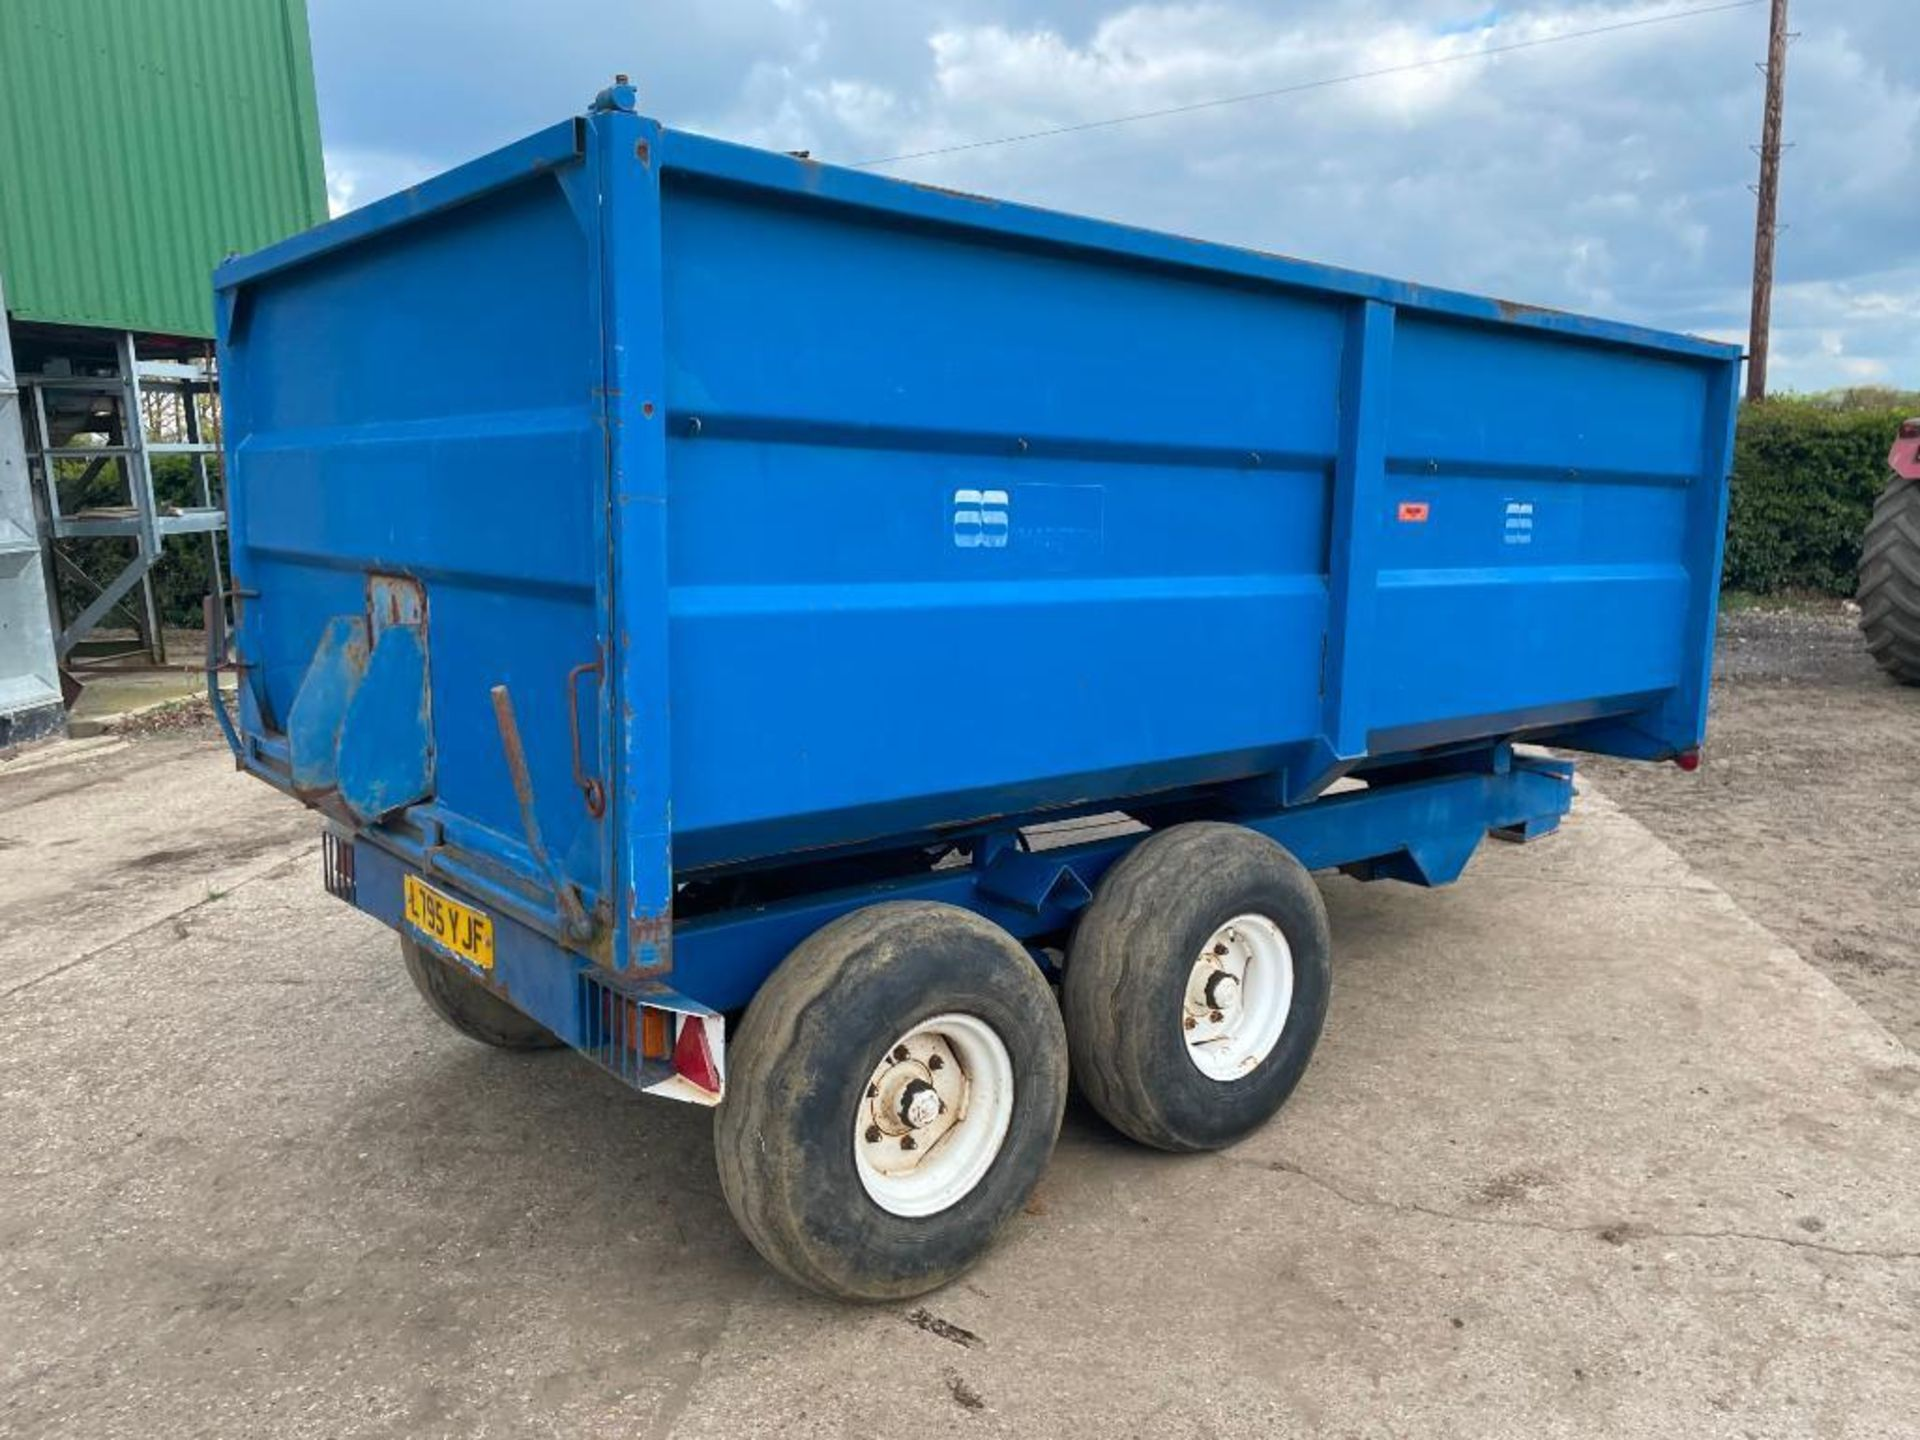 1986 AS Marston 8t twin axle grain trailer, manual tailgate and grain chute on 11.5/80-15.3 wheels a - Image 9 of 15